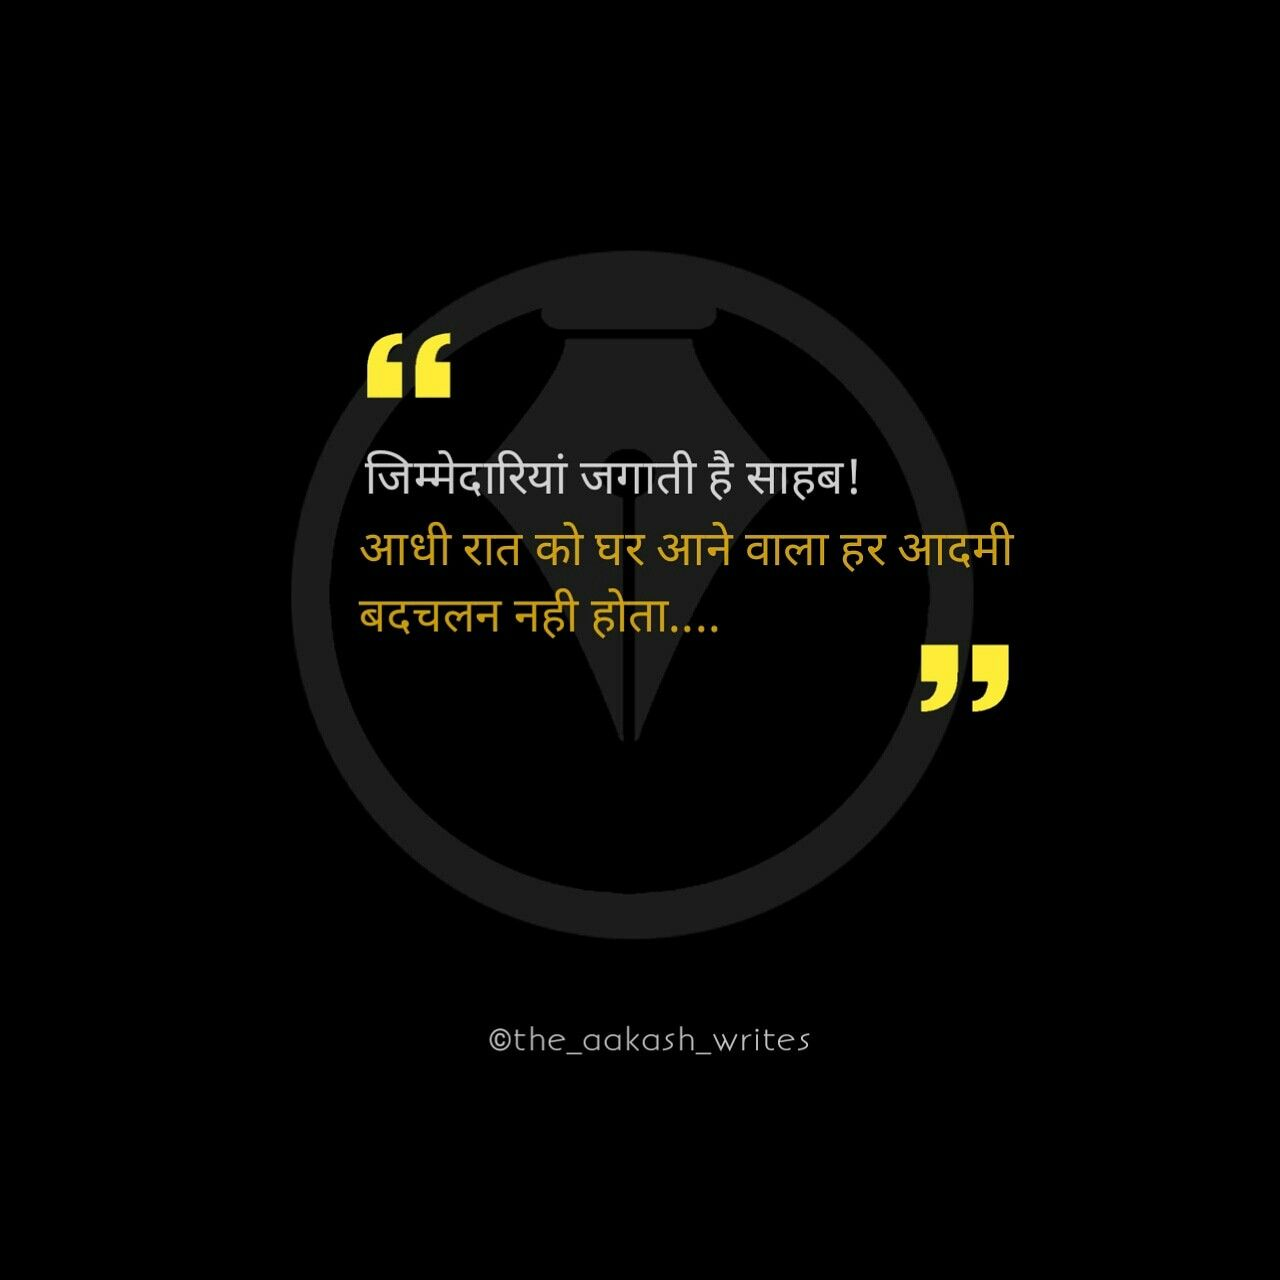 Quote Express Gorgeous Pinkhushboo Vasudev On Quote Express  Pinterest  Hindi Quotes .